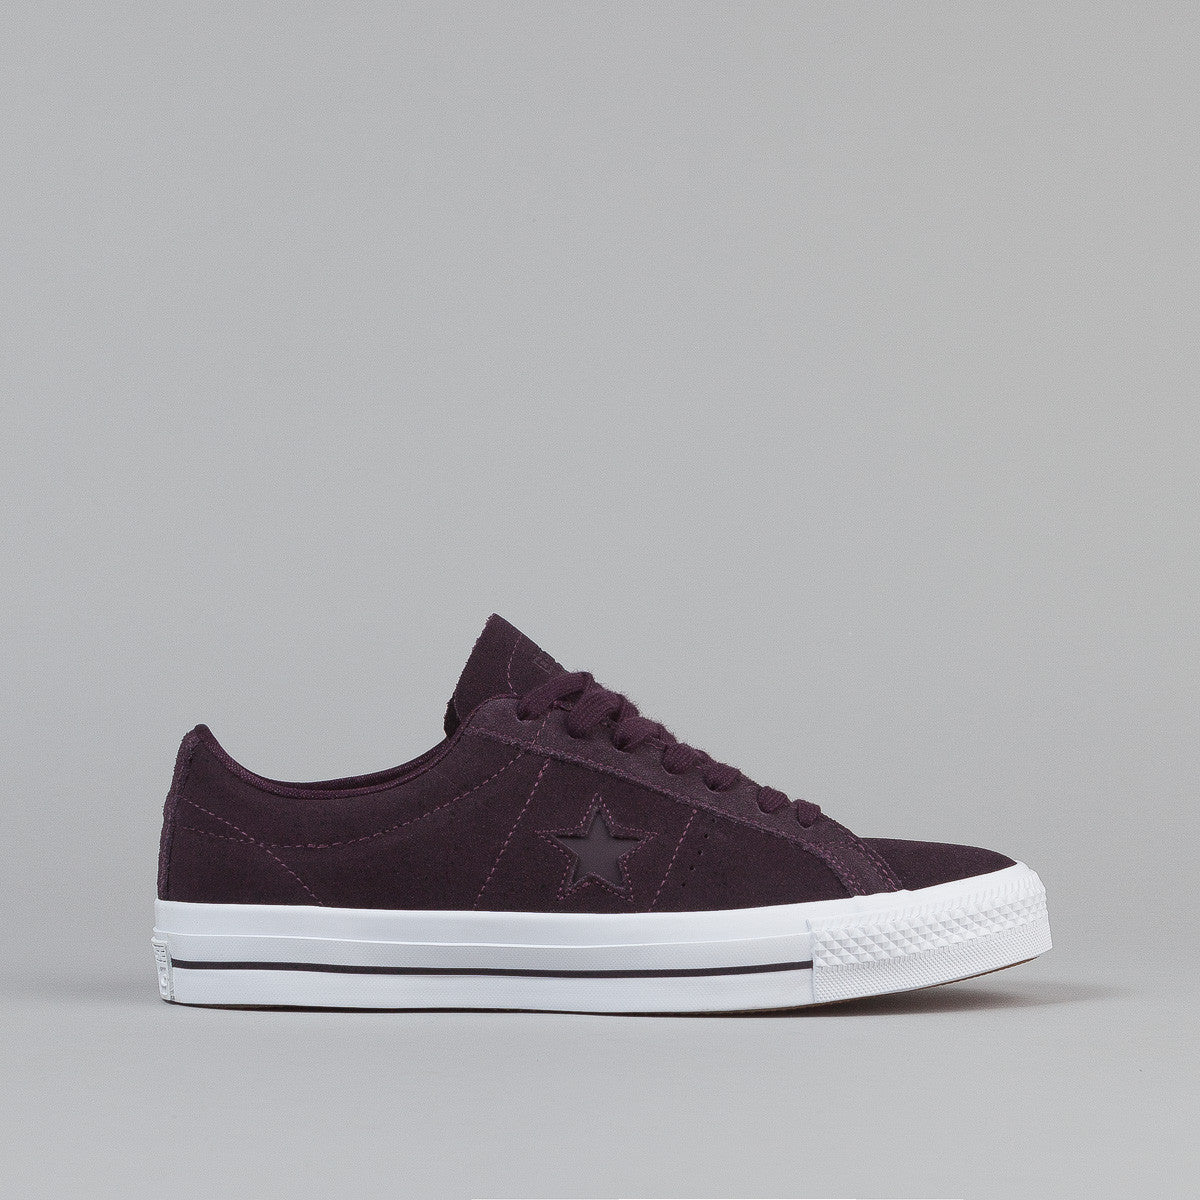 Converse One Star Pro OX Shoes